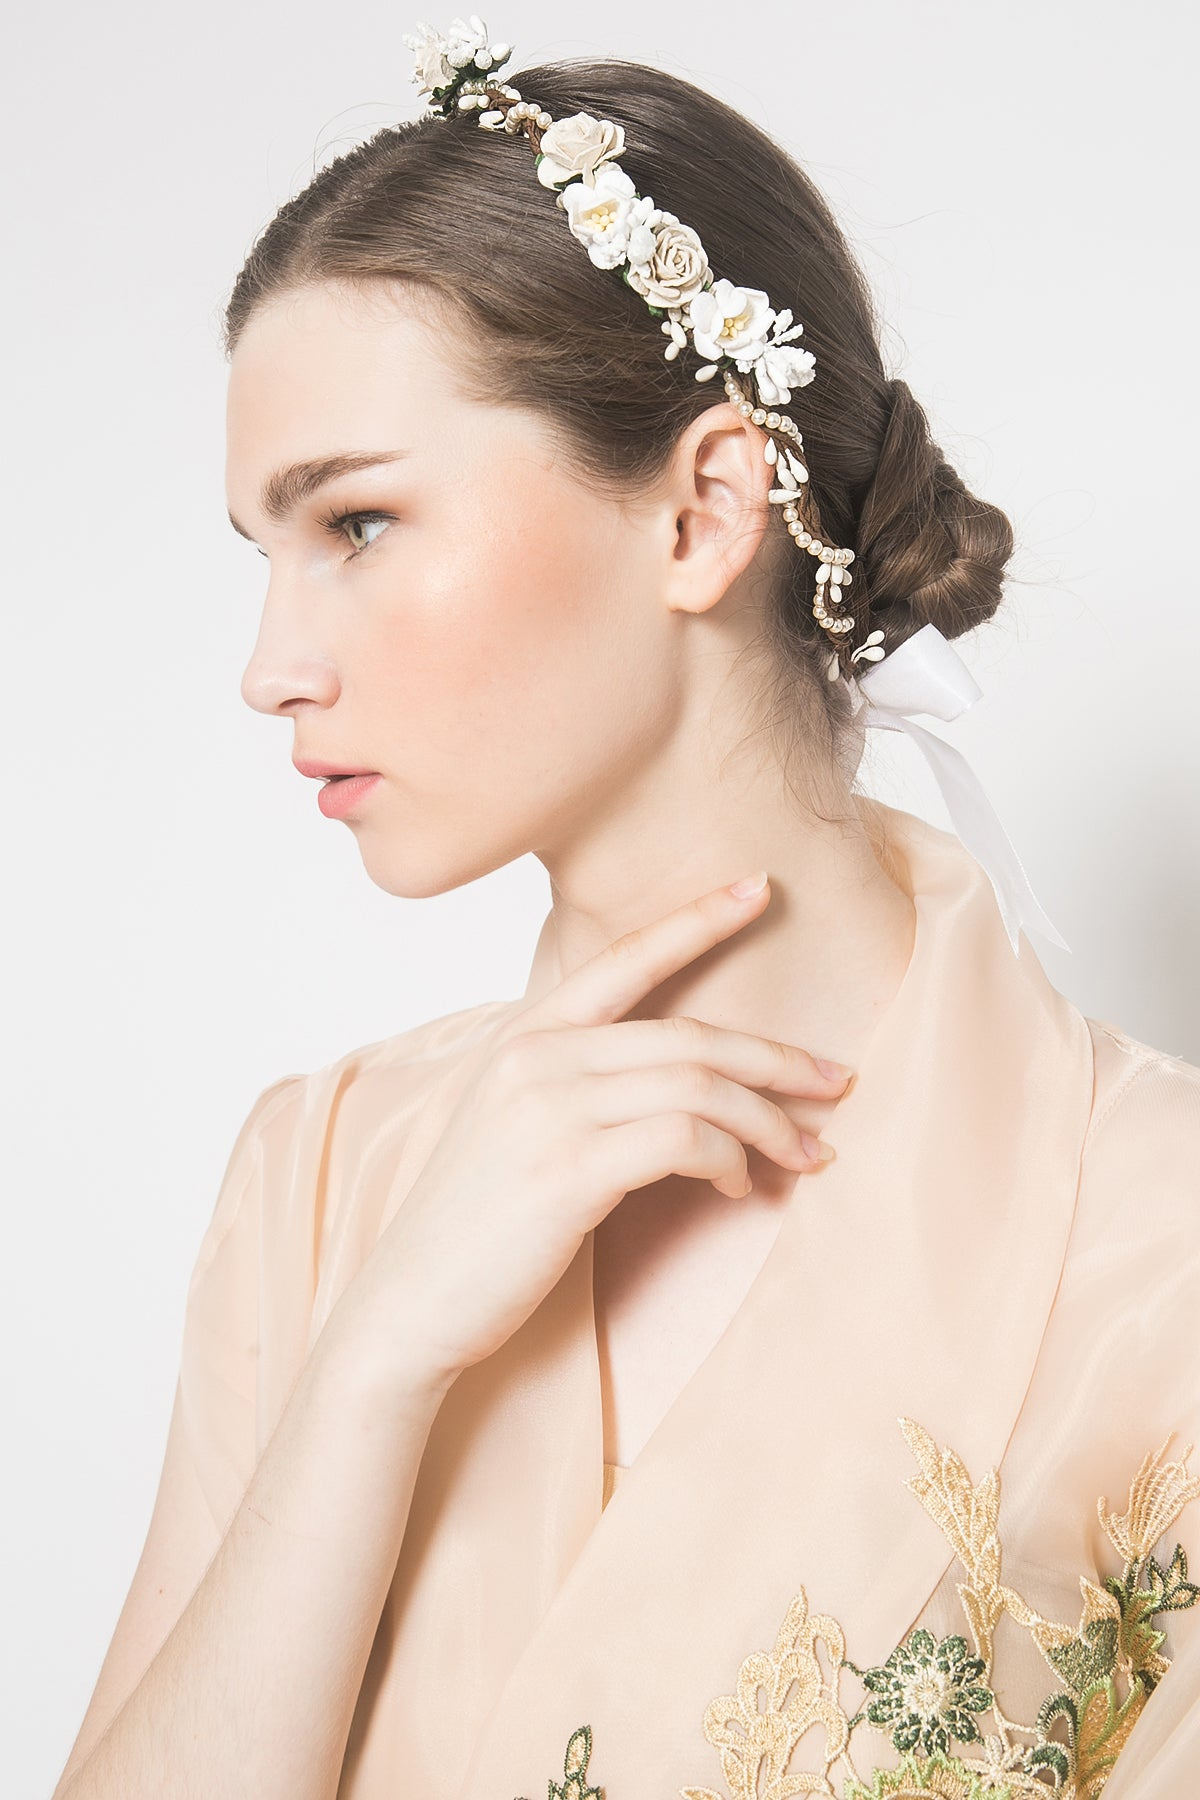 Caralia Flower Crown With Ribbon in Broken White